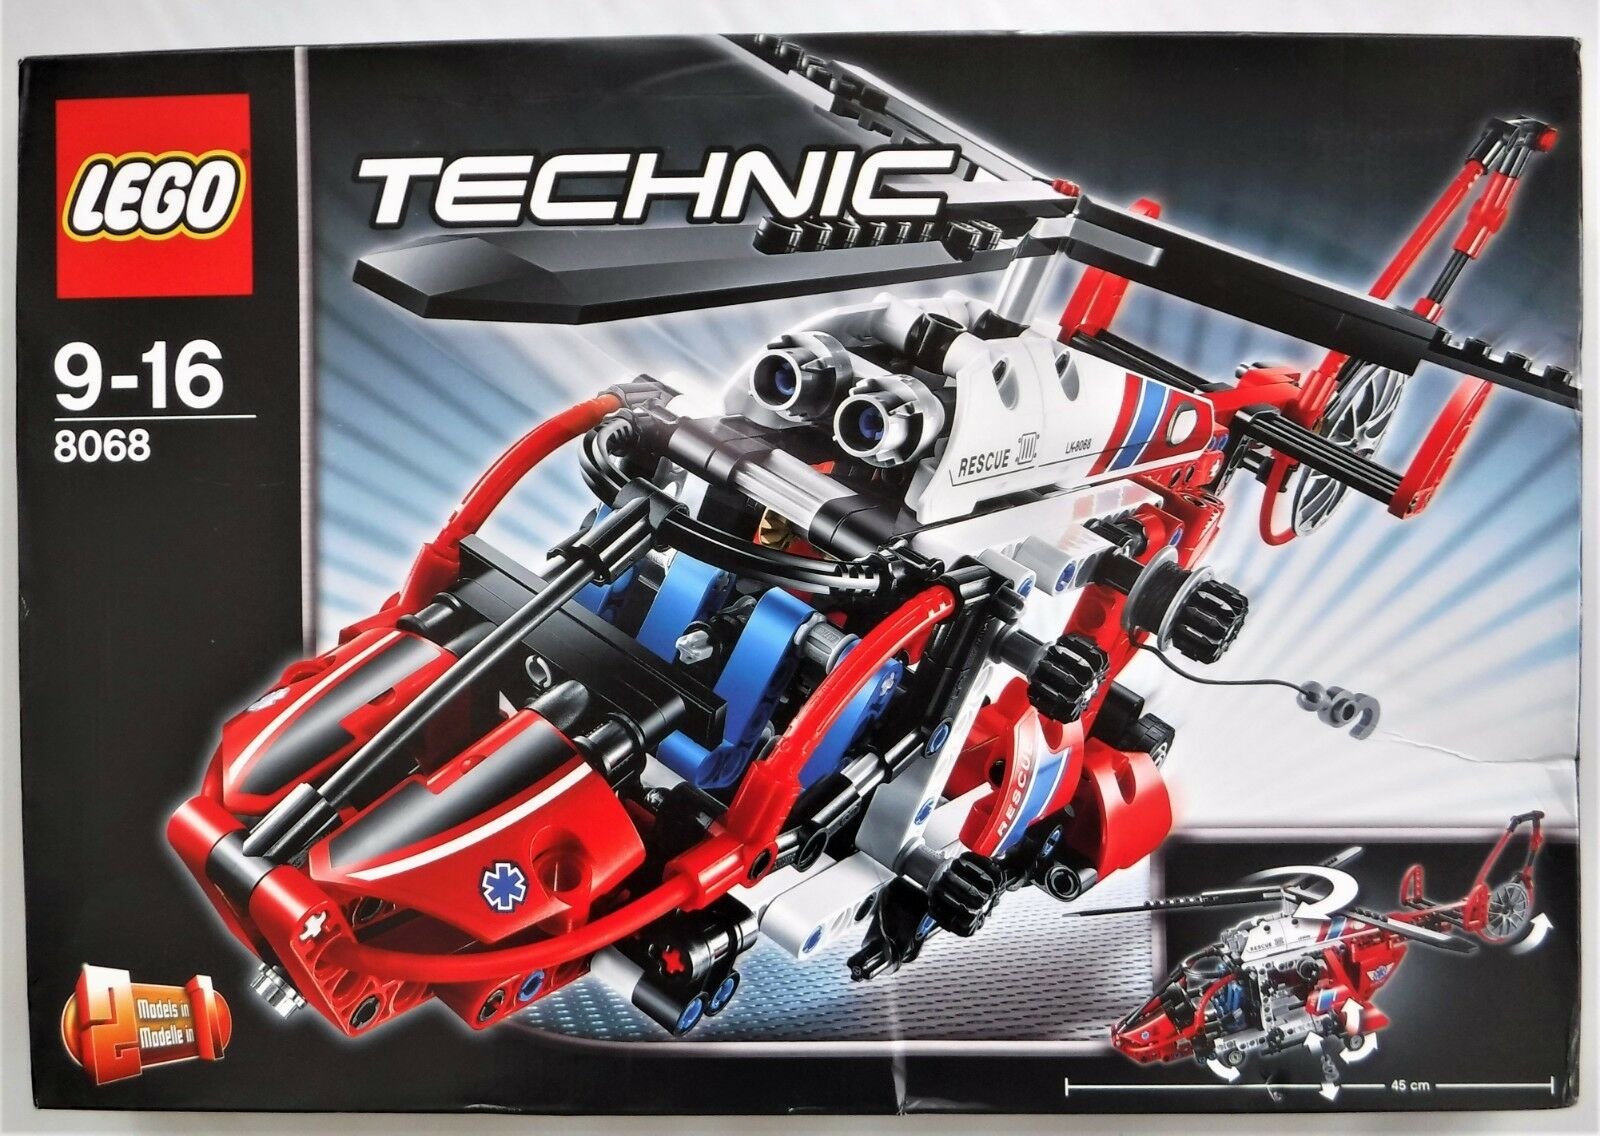 LEGO TECHNIC 8068 2-1 RESCUE   MEDICAL HELICOPTER BRAND NEW RETIRED SET